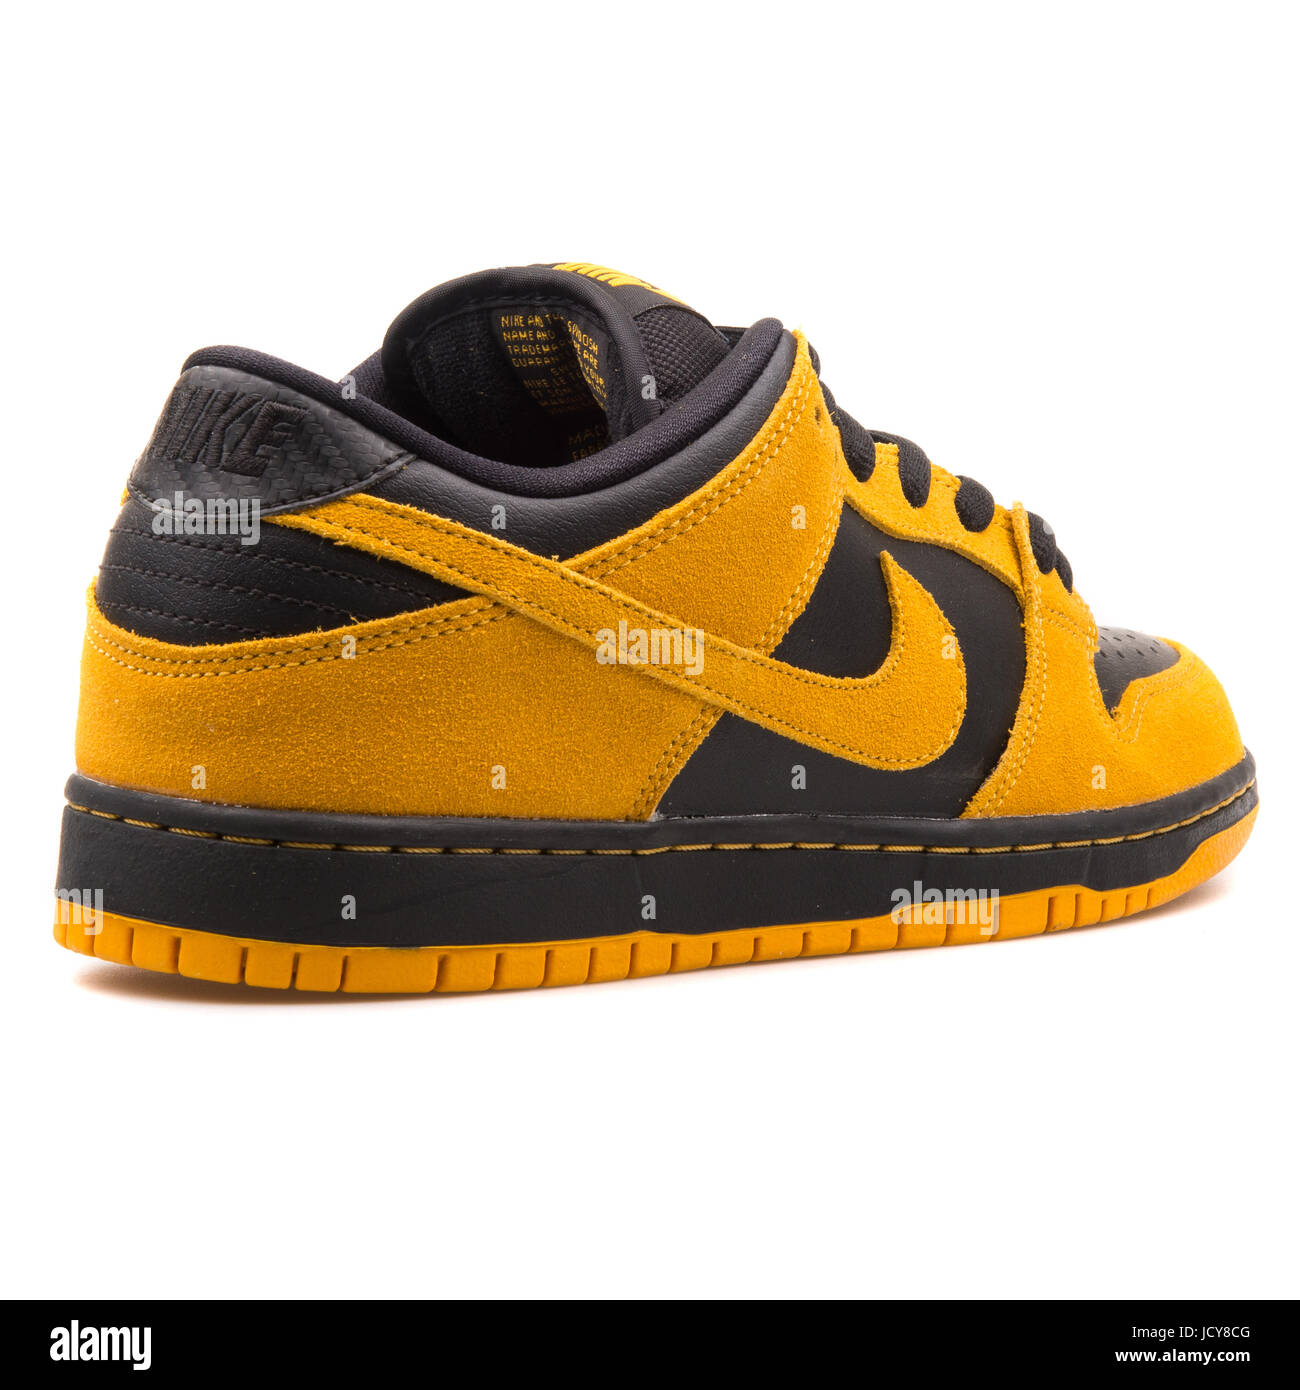 d2e200ffe393 ... low cost nike dunk low pro sb gold yellow and black mens skateboarding  shoes 304292 706